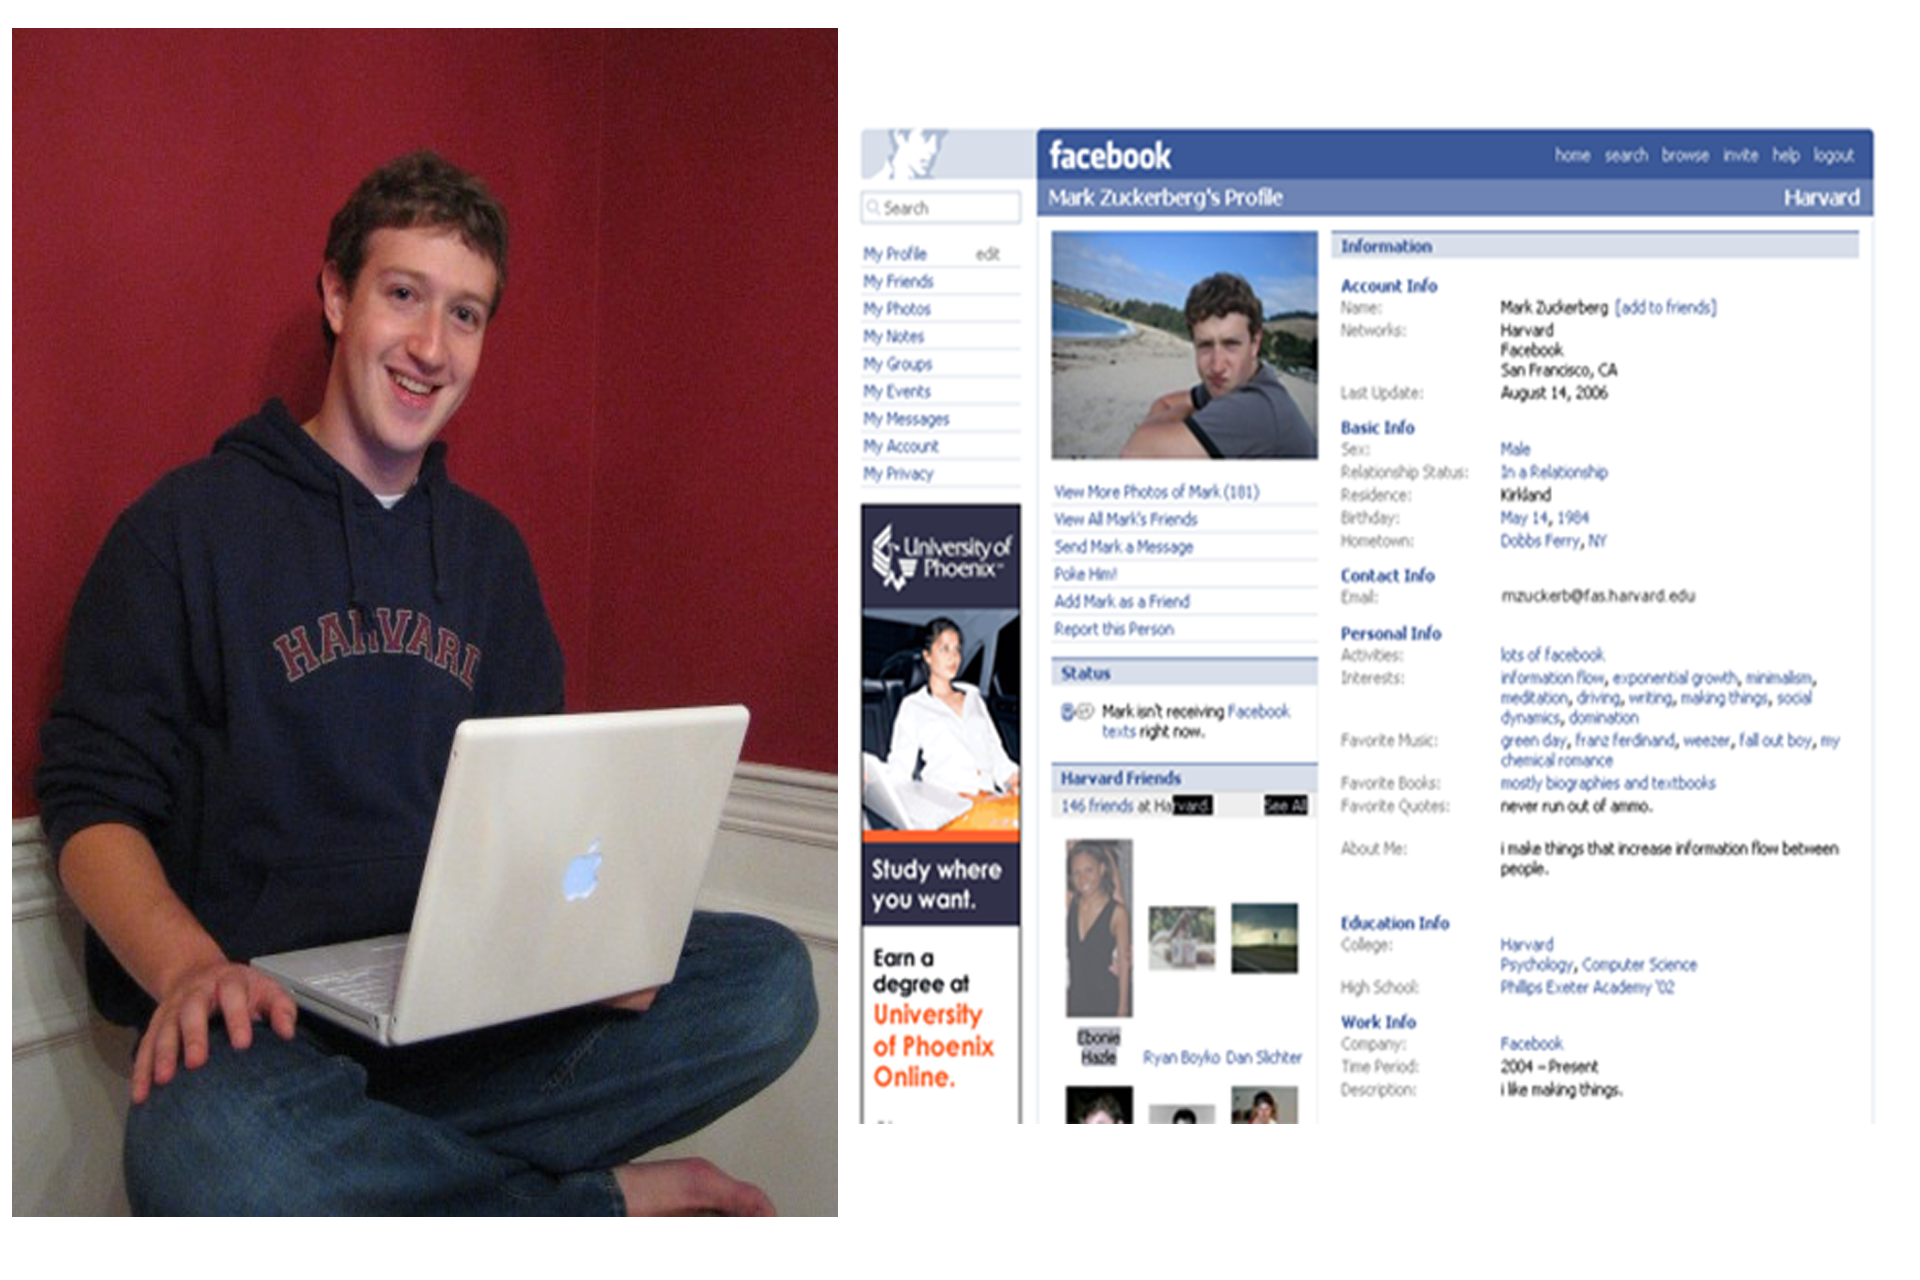 Facebook Celebrate 17 Years Old, SEE Mark Zuckerberg Reaction, AFRINOTES